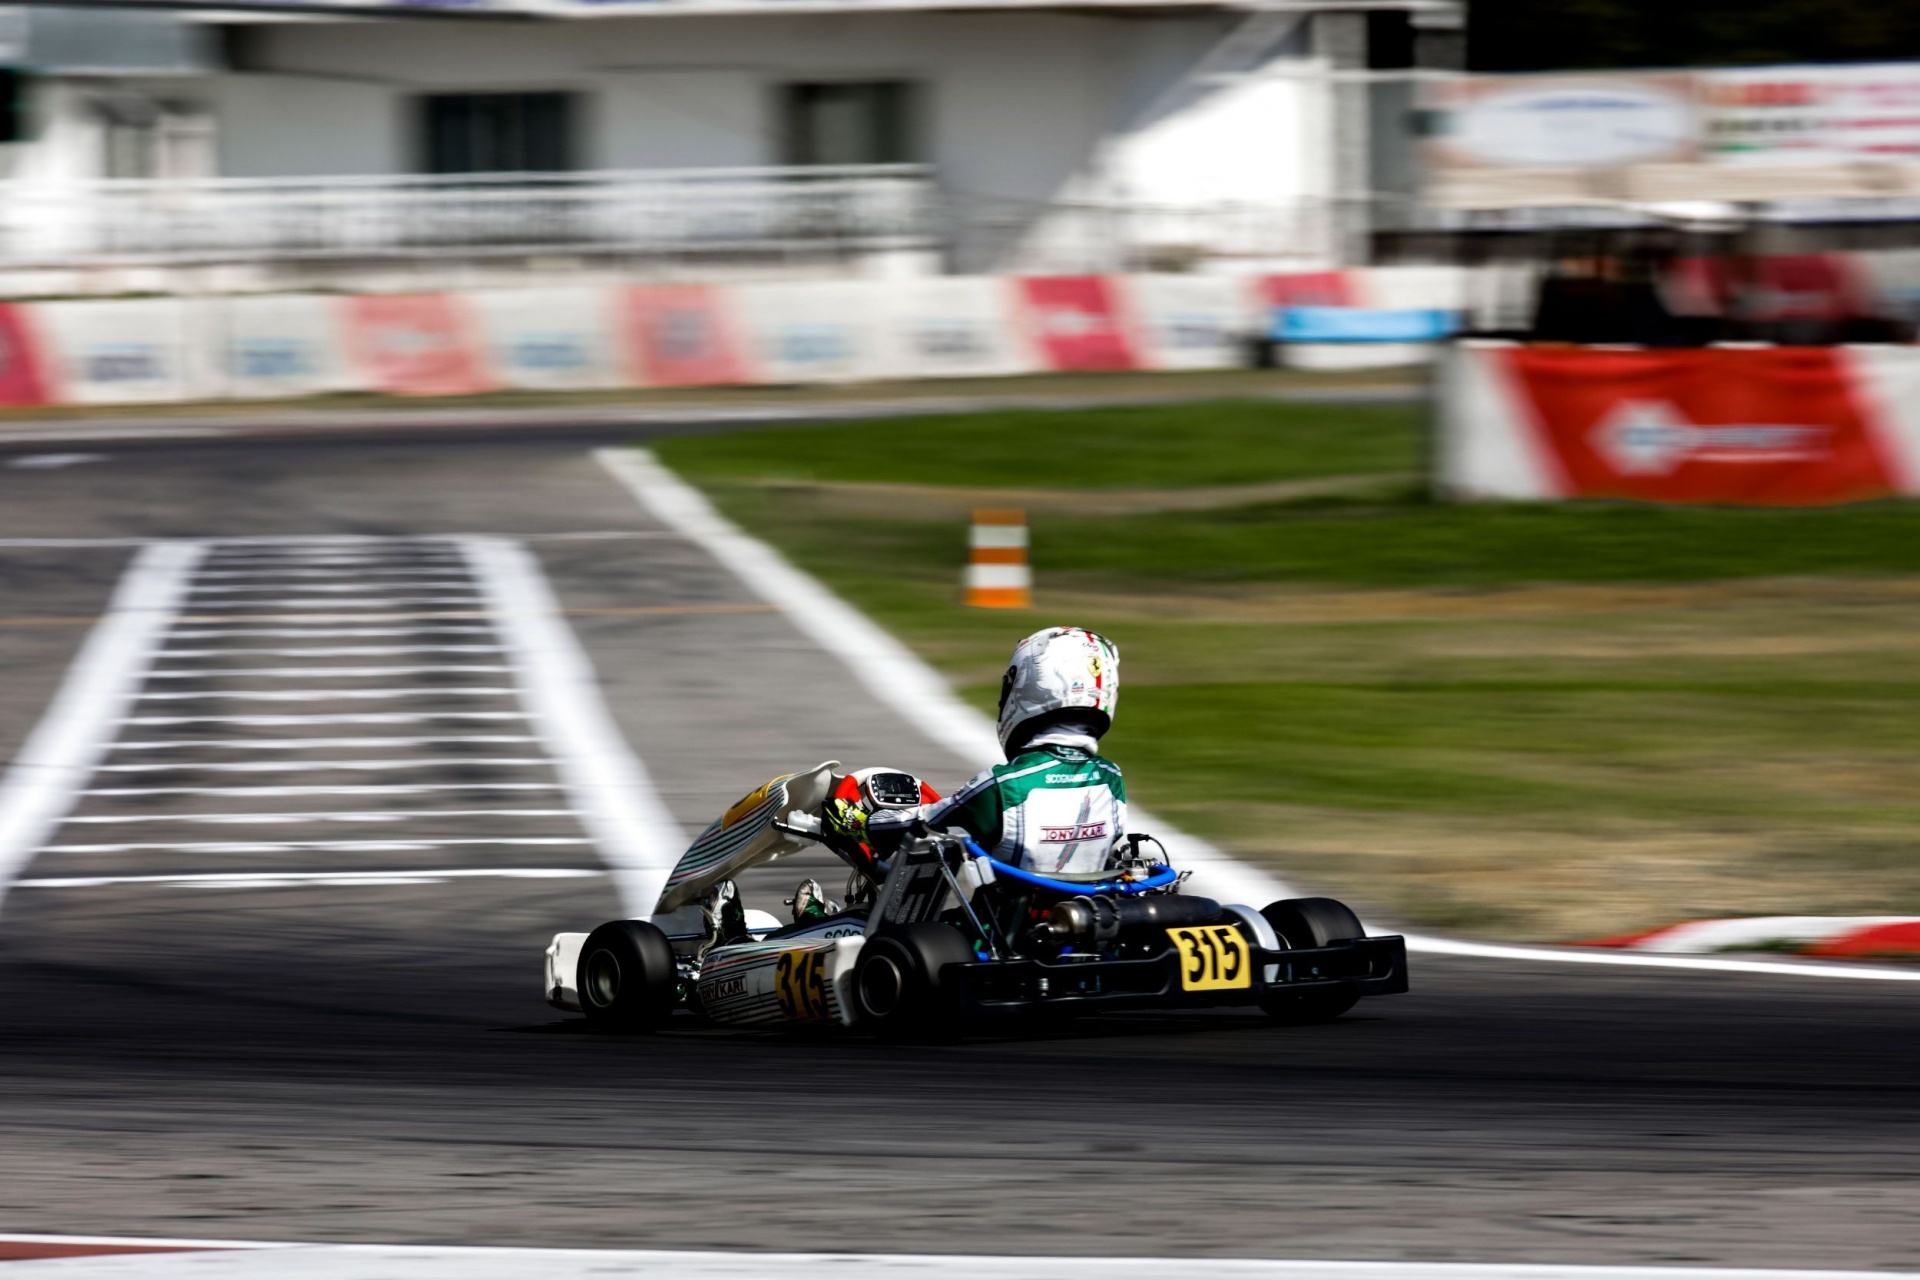 Gamoto in Siena for the third round of ACI Karting